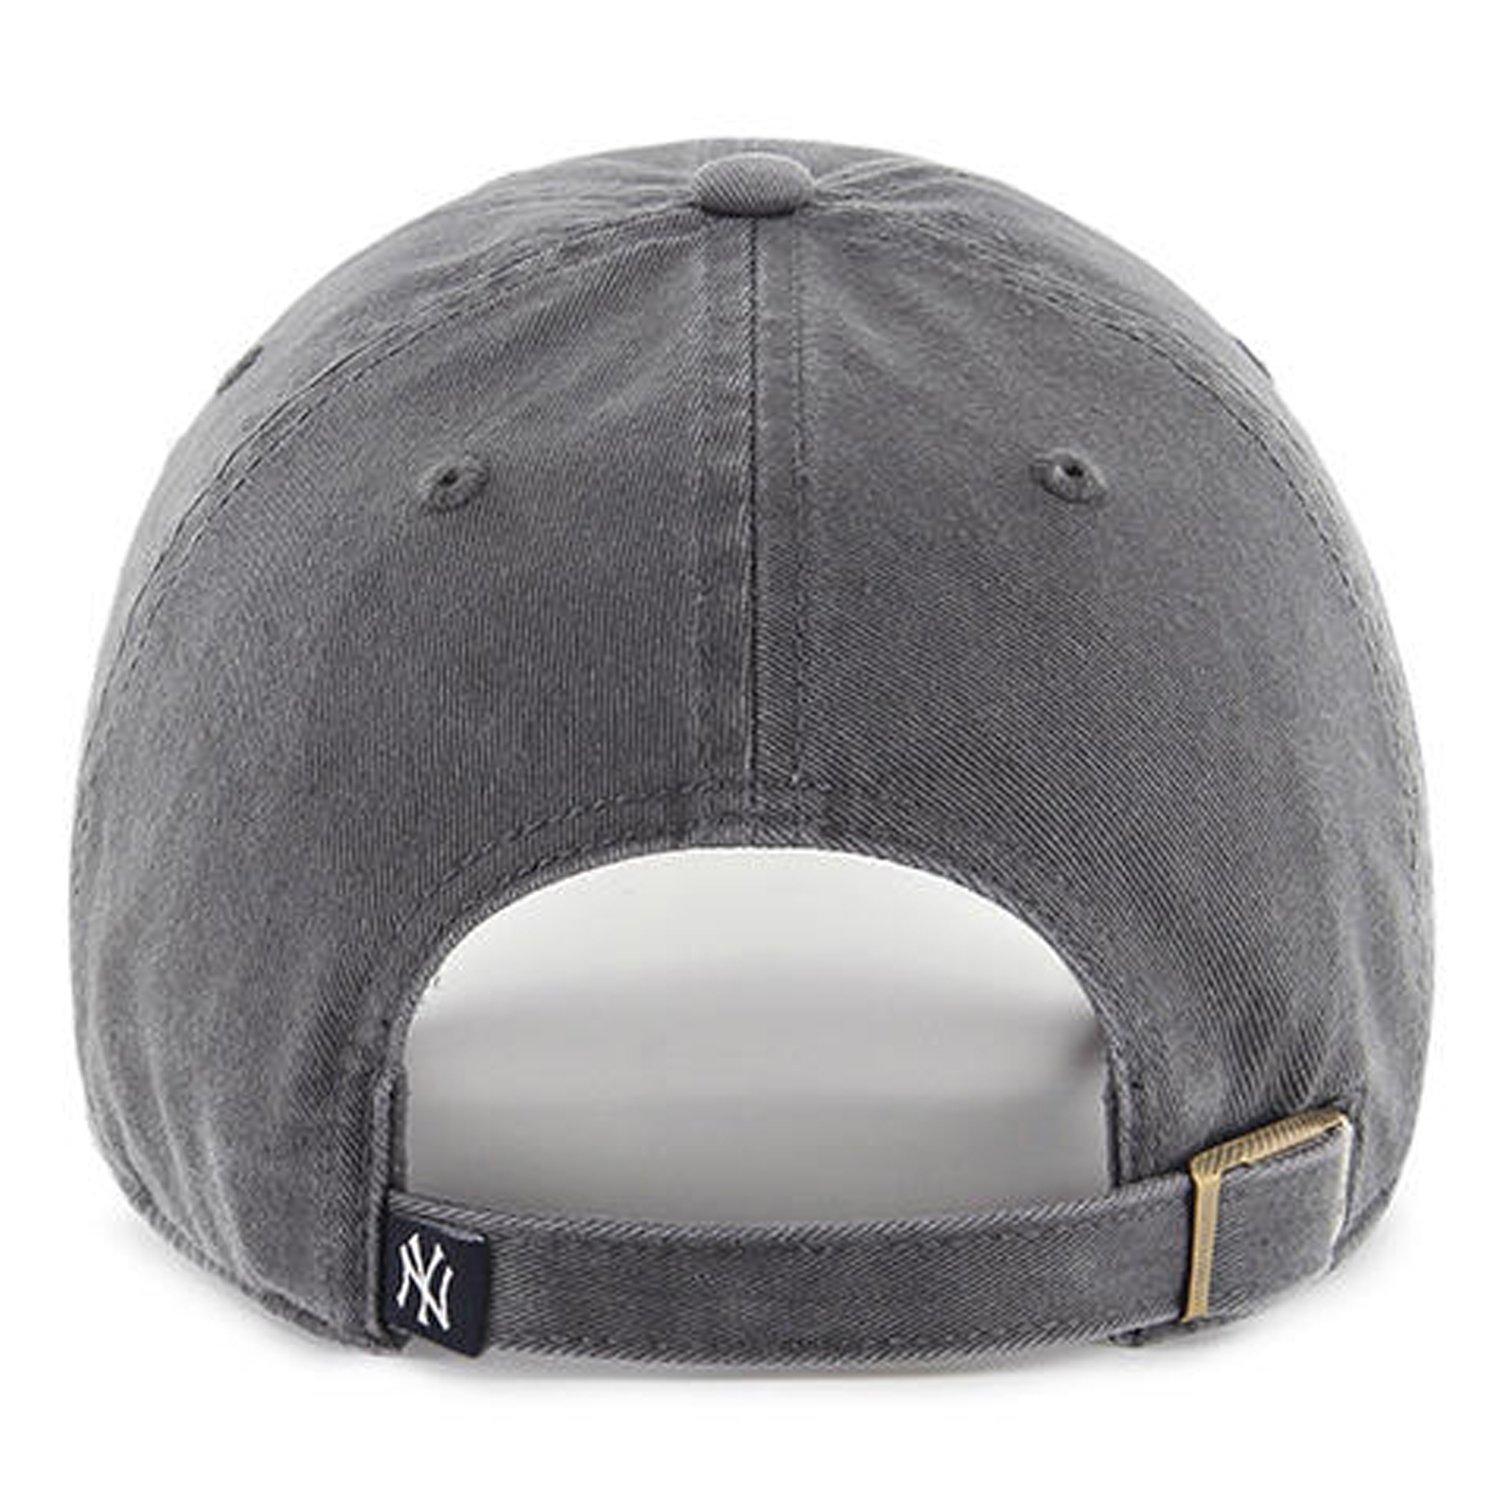 online store 31b97 34c5a Amazon.com   47 Brand MLB New York Yankees Clean Up Cap - Charcoal Gray    Sports   Outdoors